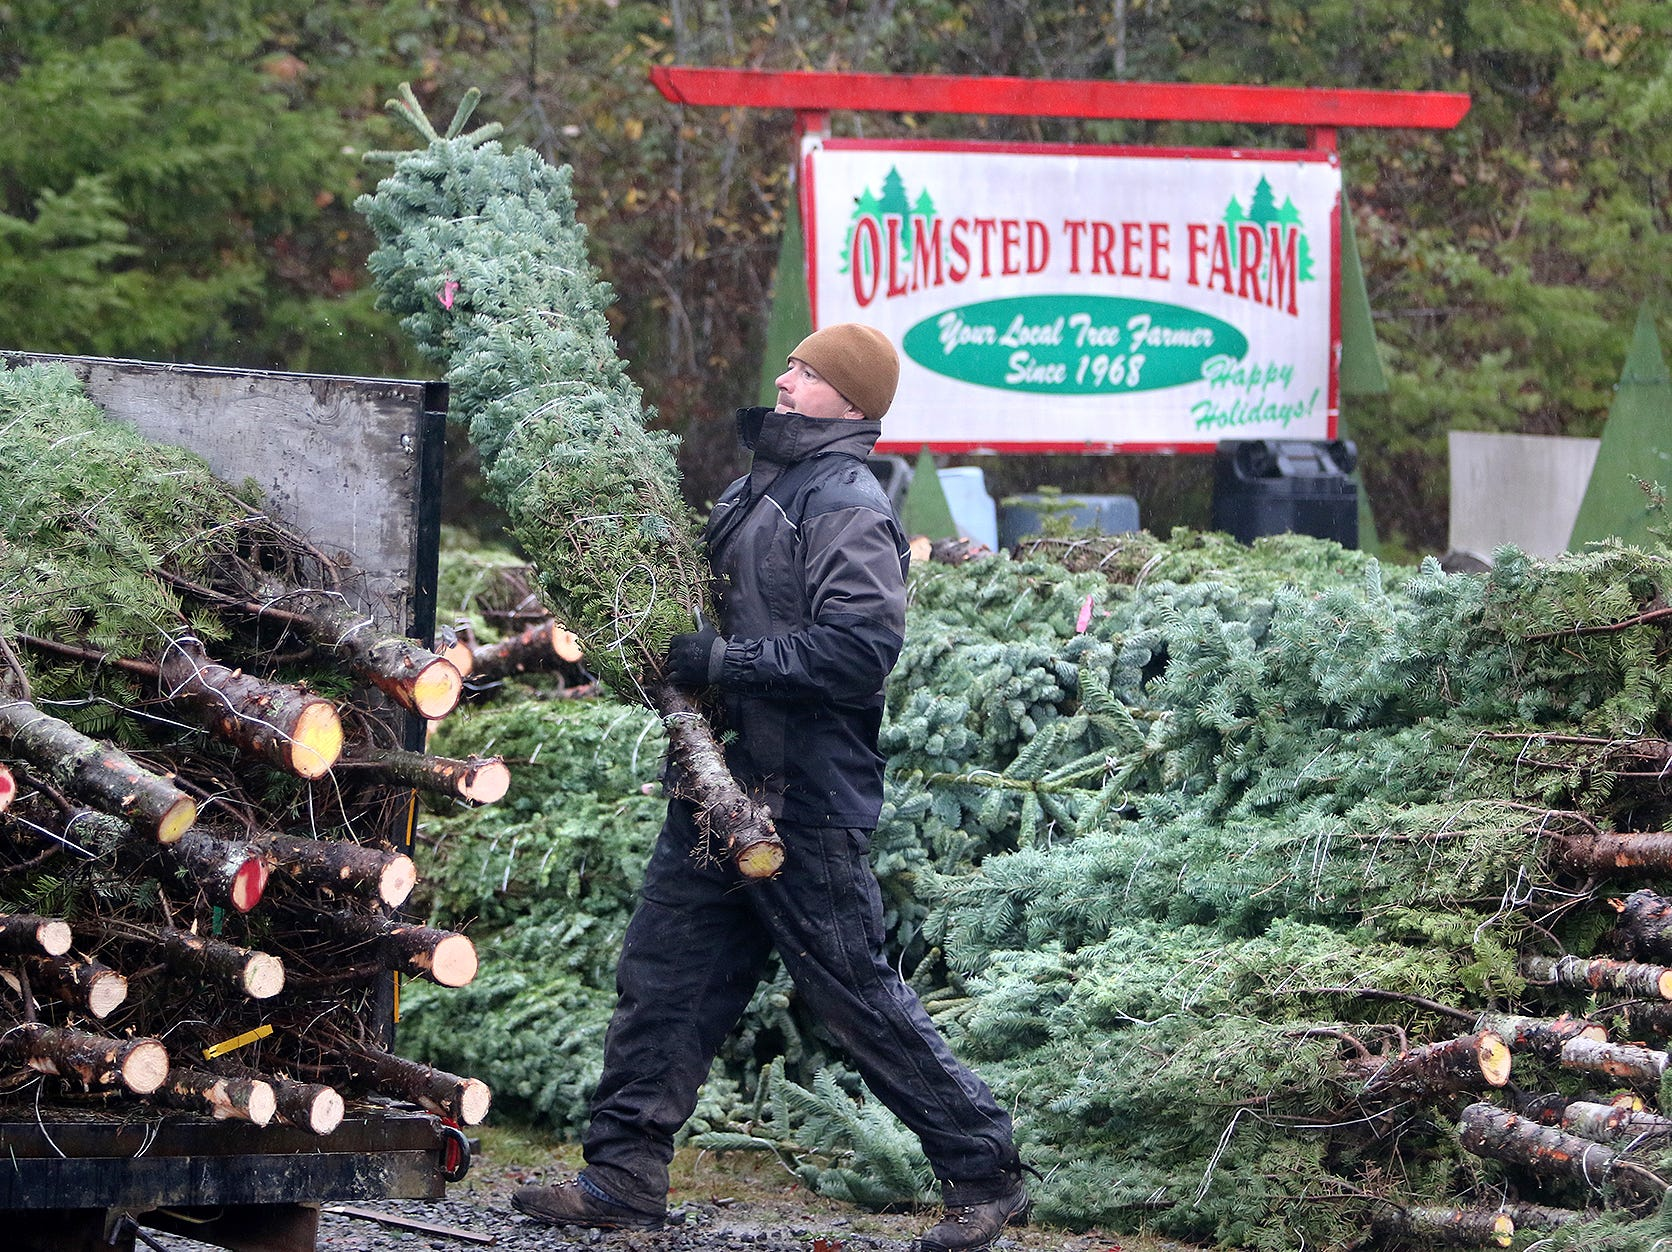 Josh Olmsted moves a cut Christmas tree to a truck to be loaded for a run to a Kitsap lot on Wednesday, November, 21, 2018 at the tree farm in Poulsbo. The family has run a tree business for 50 years. Friday, November 23, is the opening day for the Poulsbo U-cut tree farm.